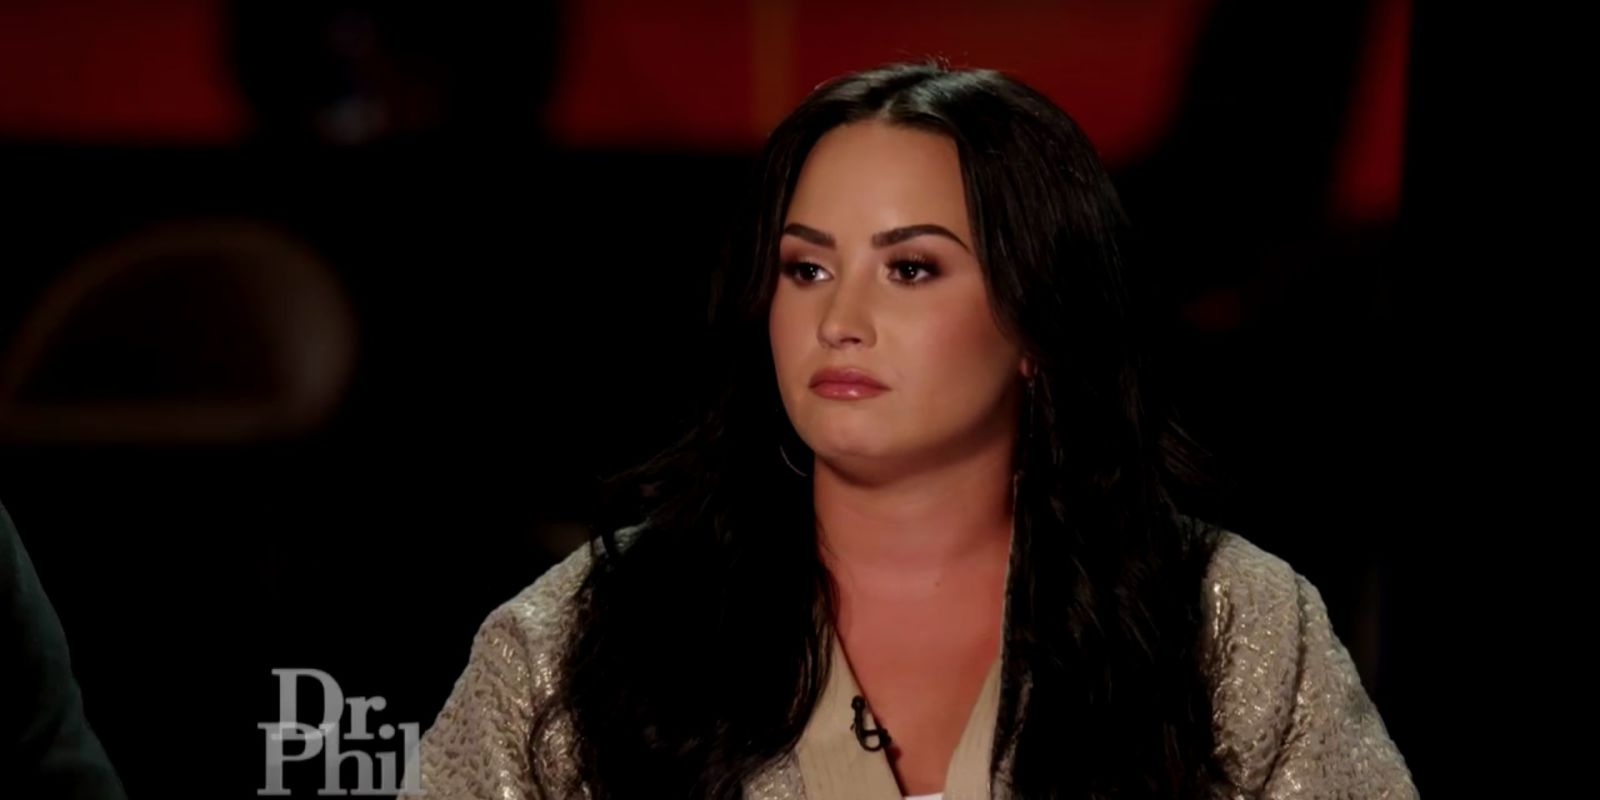 Demi Lovato offers support for people with suicidal thoughts in moving TV interview